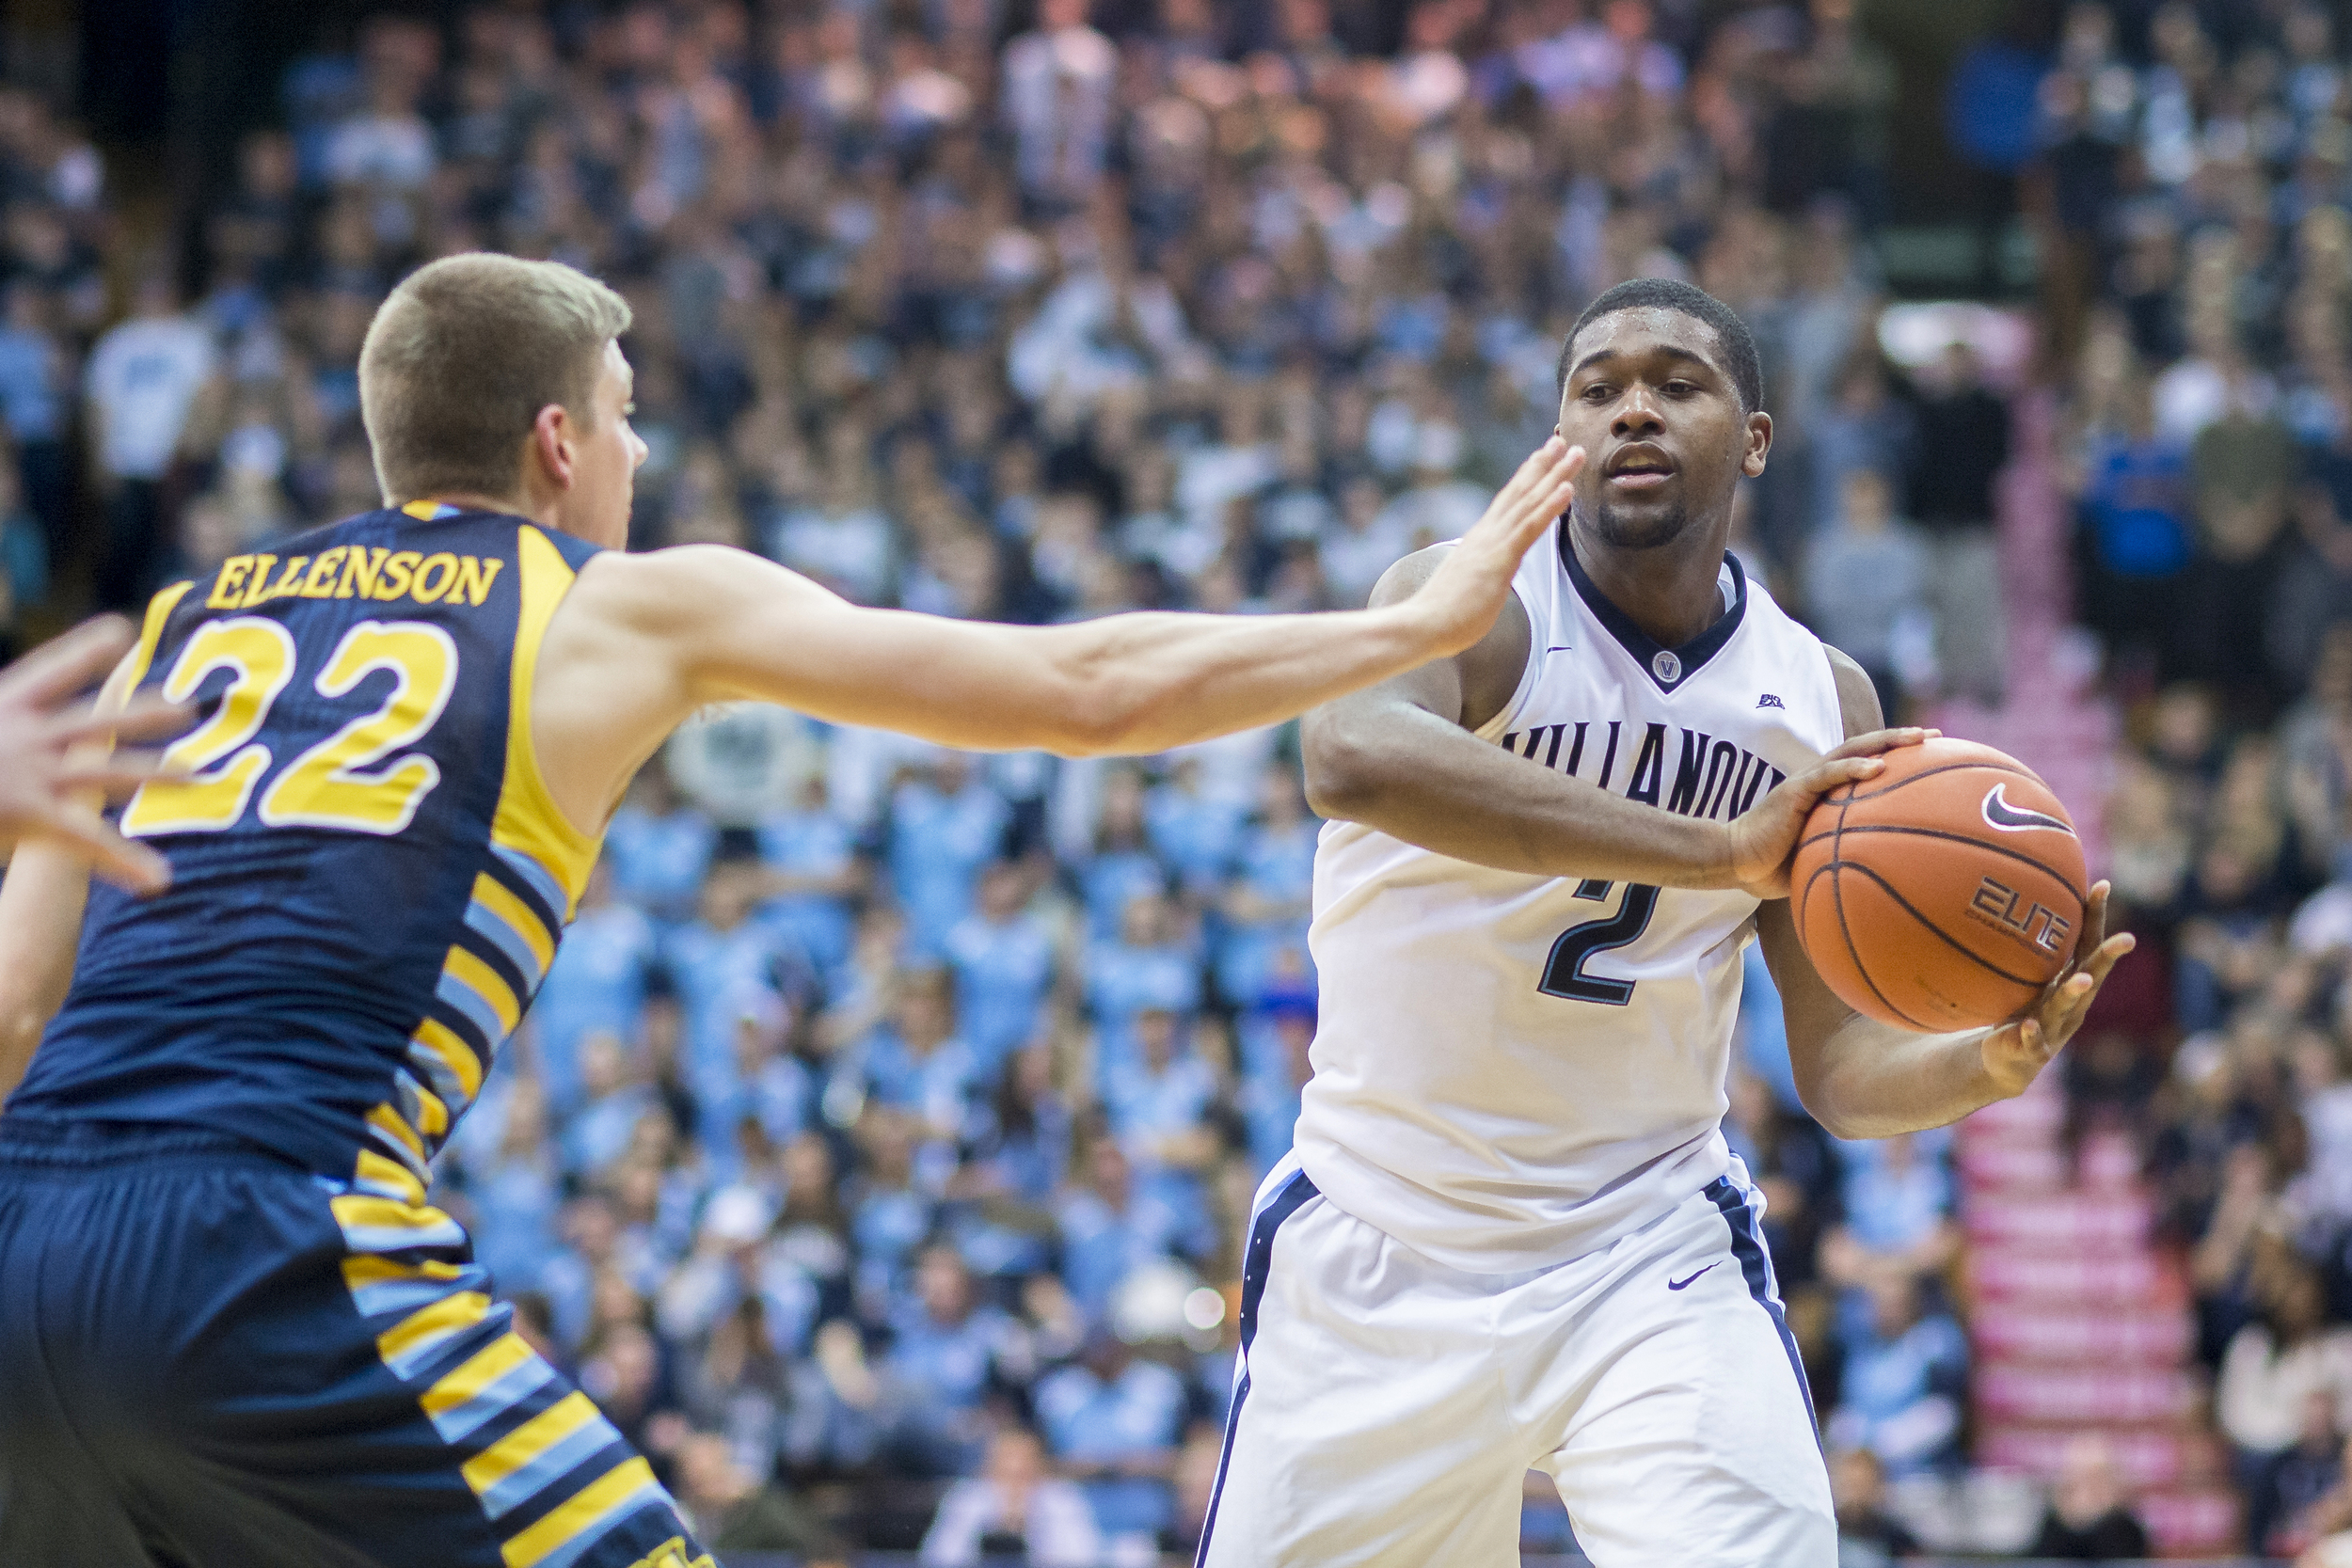 13 January 2016: Villanova Wildcats forward Kris Jenkins (2) passes around Marquette Golden Eagles guard Wally Ellenson (22) during the NCAA Men's basketball game between the Marquette Golden Eagles and the Villanova Wildcats played at the Pavilion in Villanova, PA. (Photo by Gavin Baker/Icon Sportswire)